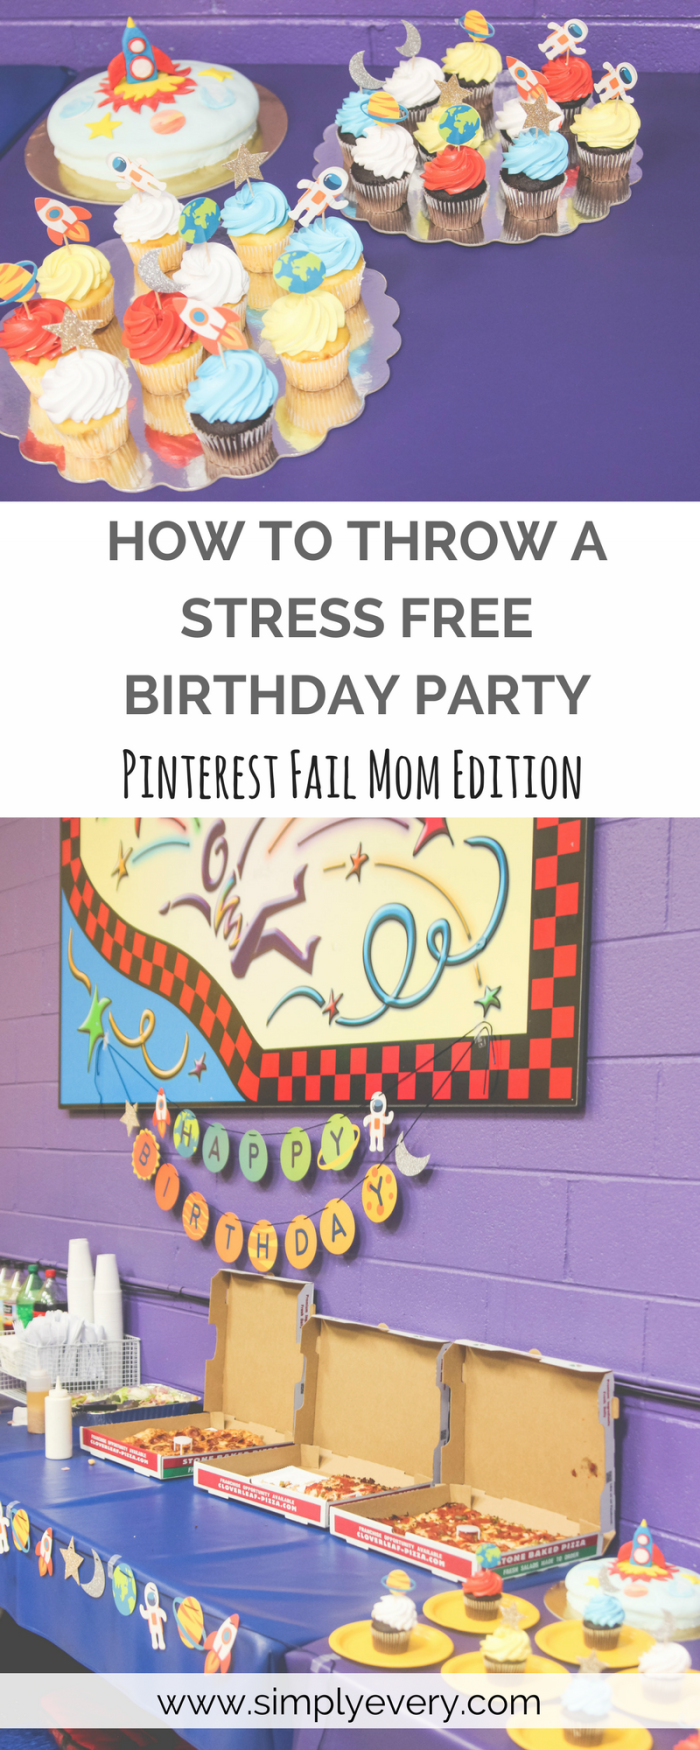 How To Throw A Stress Free Birthday Party